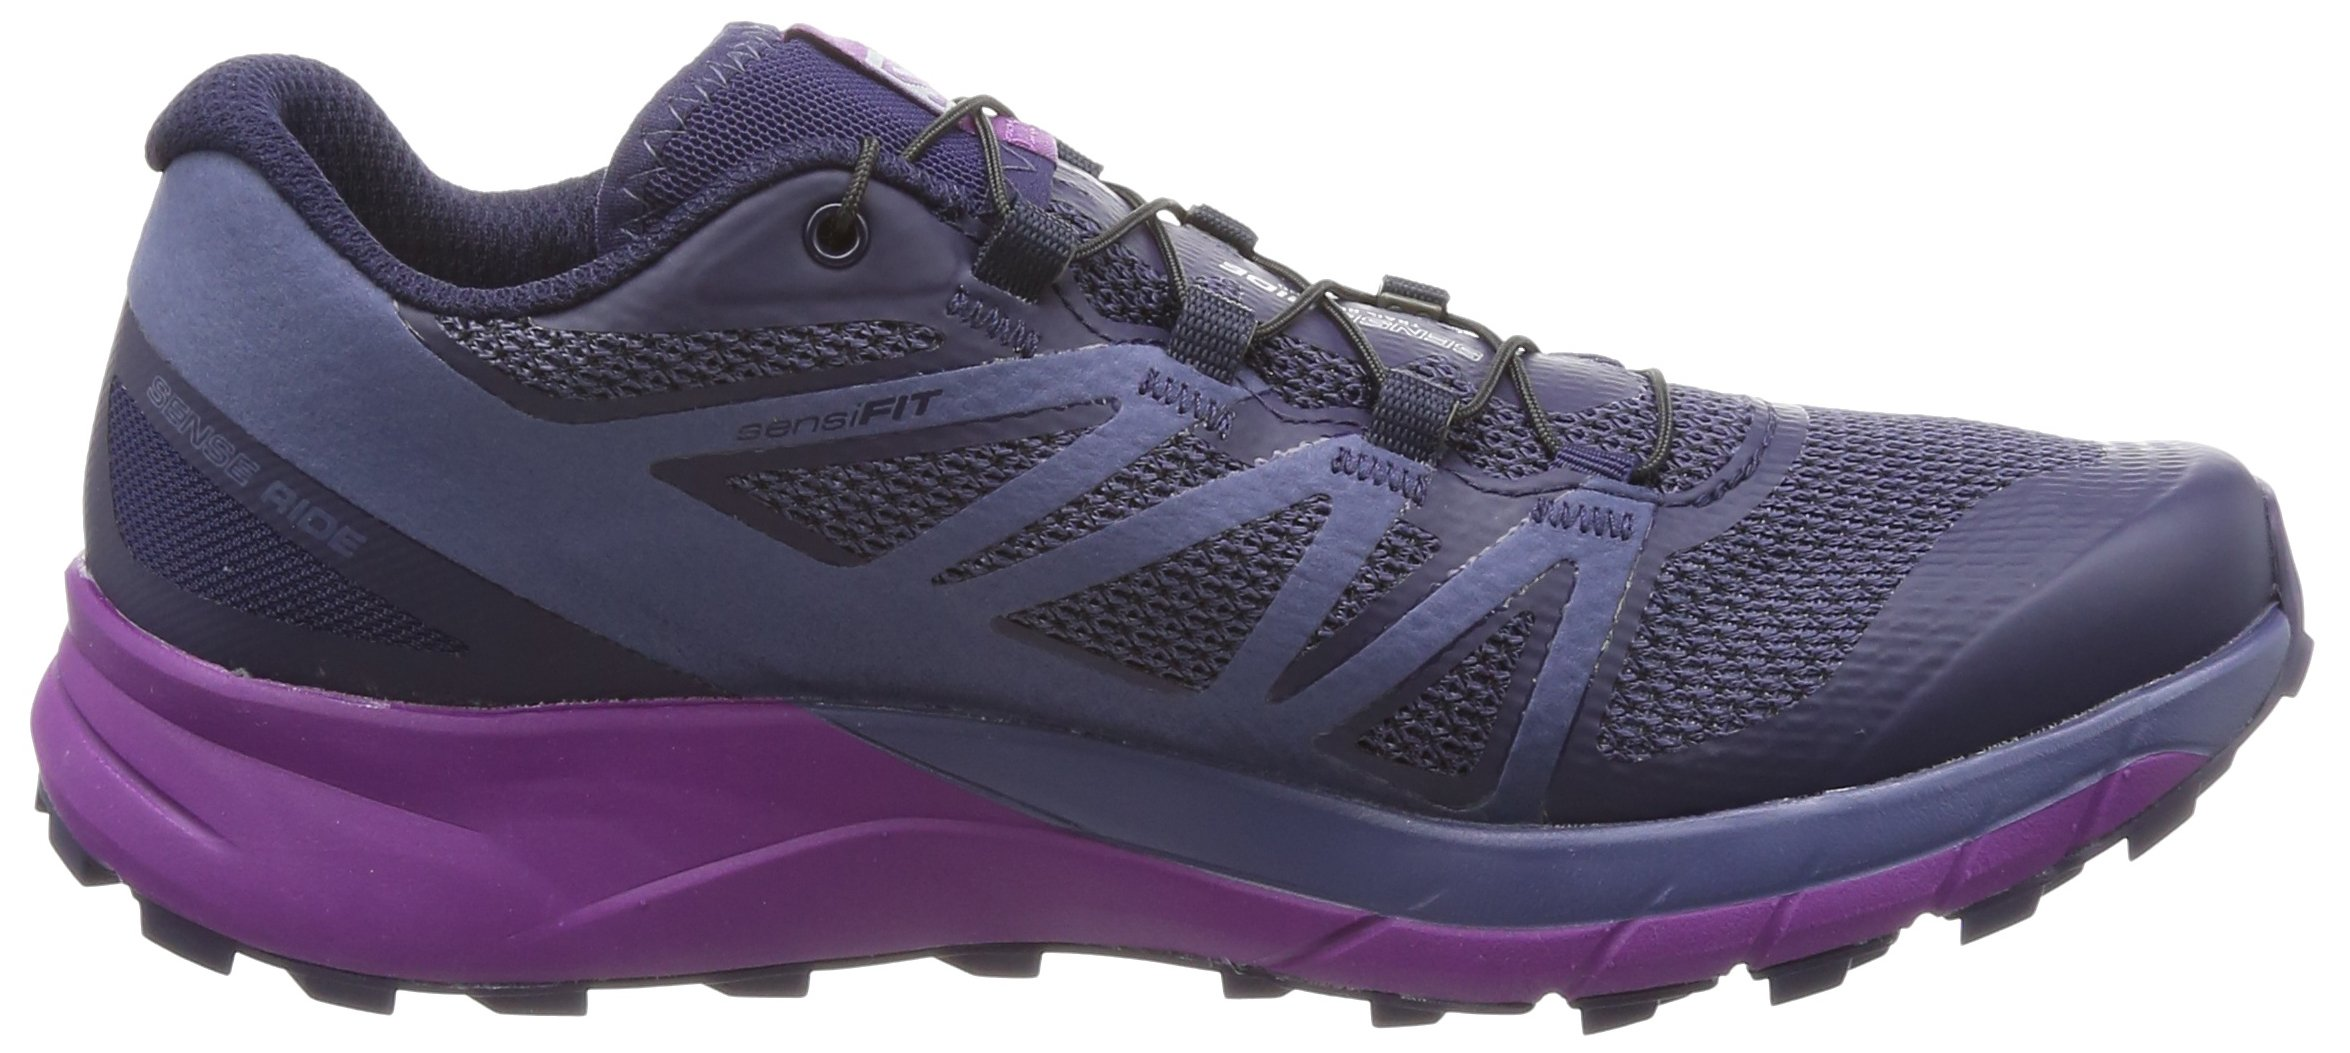 Salomon Sense Ride Trail Running Shoe - Women's Evening Blue/Crown Blue/Grape Juice 6.5 by Salomon (Image #6)